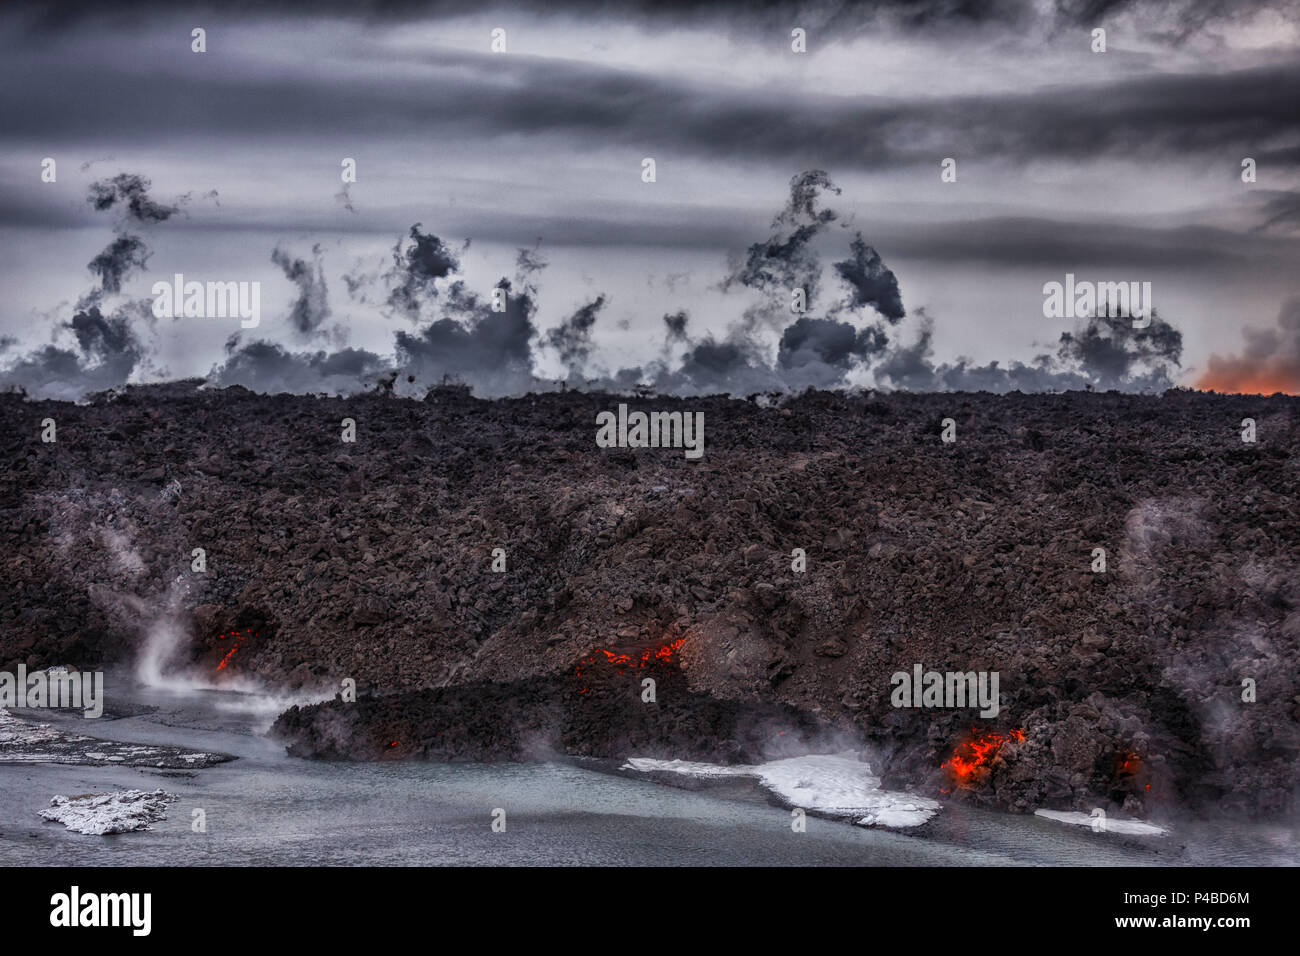 Hot lava steaming. Eruption site at Holuhraun near Bardarbunga Volcano, Iceland. August 29, 2014 a fissure eruption started in Holuhraun at the northern end of a magma intrusion, which had moved progressively north, from the Bardarbunga volcano. Bardarbunga is a stratovolcano located under Vatnajokull, Iceland's most extensive glacier. Picture Date: Oct 30, 2014 - Stock Image